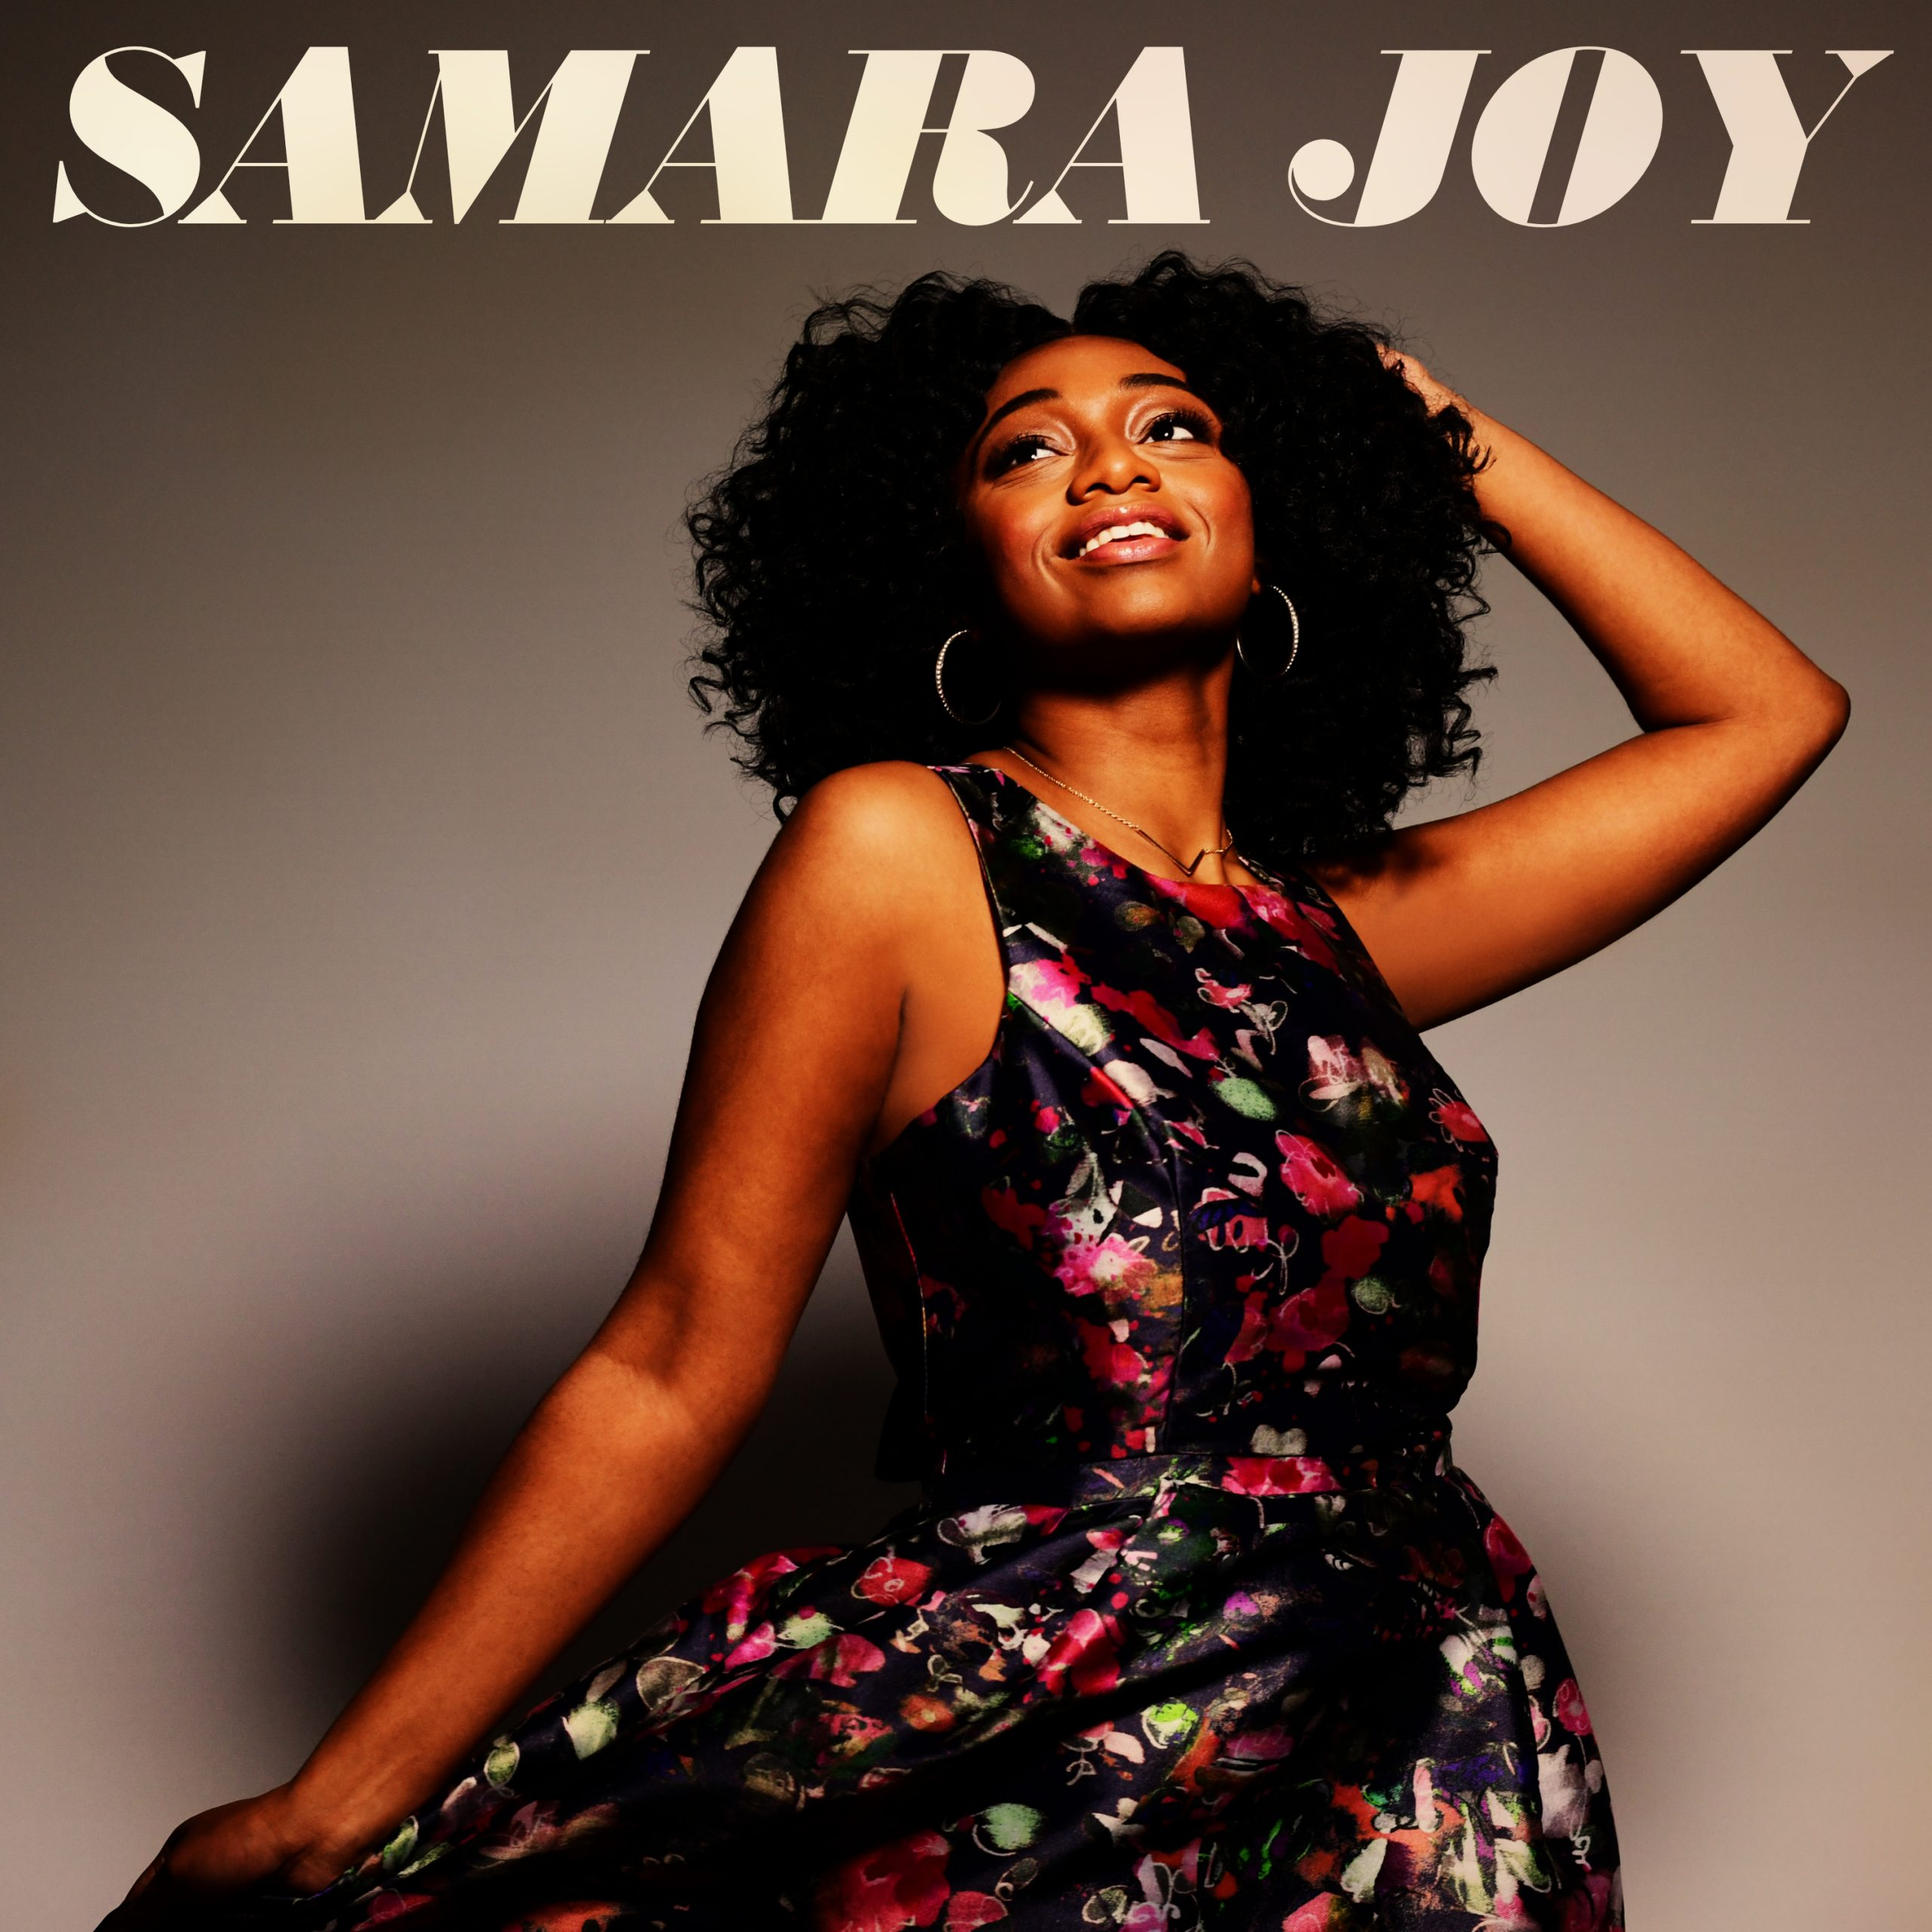 NEW RELEASE: Rising Vocalist Samara Joy to Release Self-Titled Debut on Whirlwind Recordings on July 9, 2021